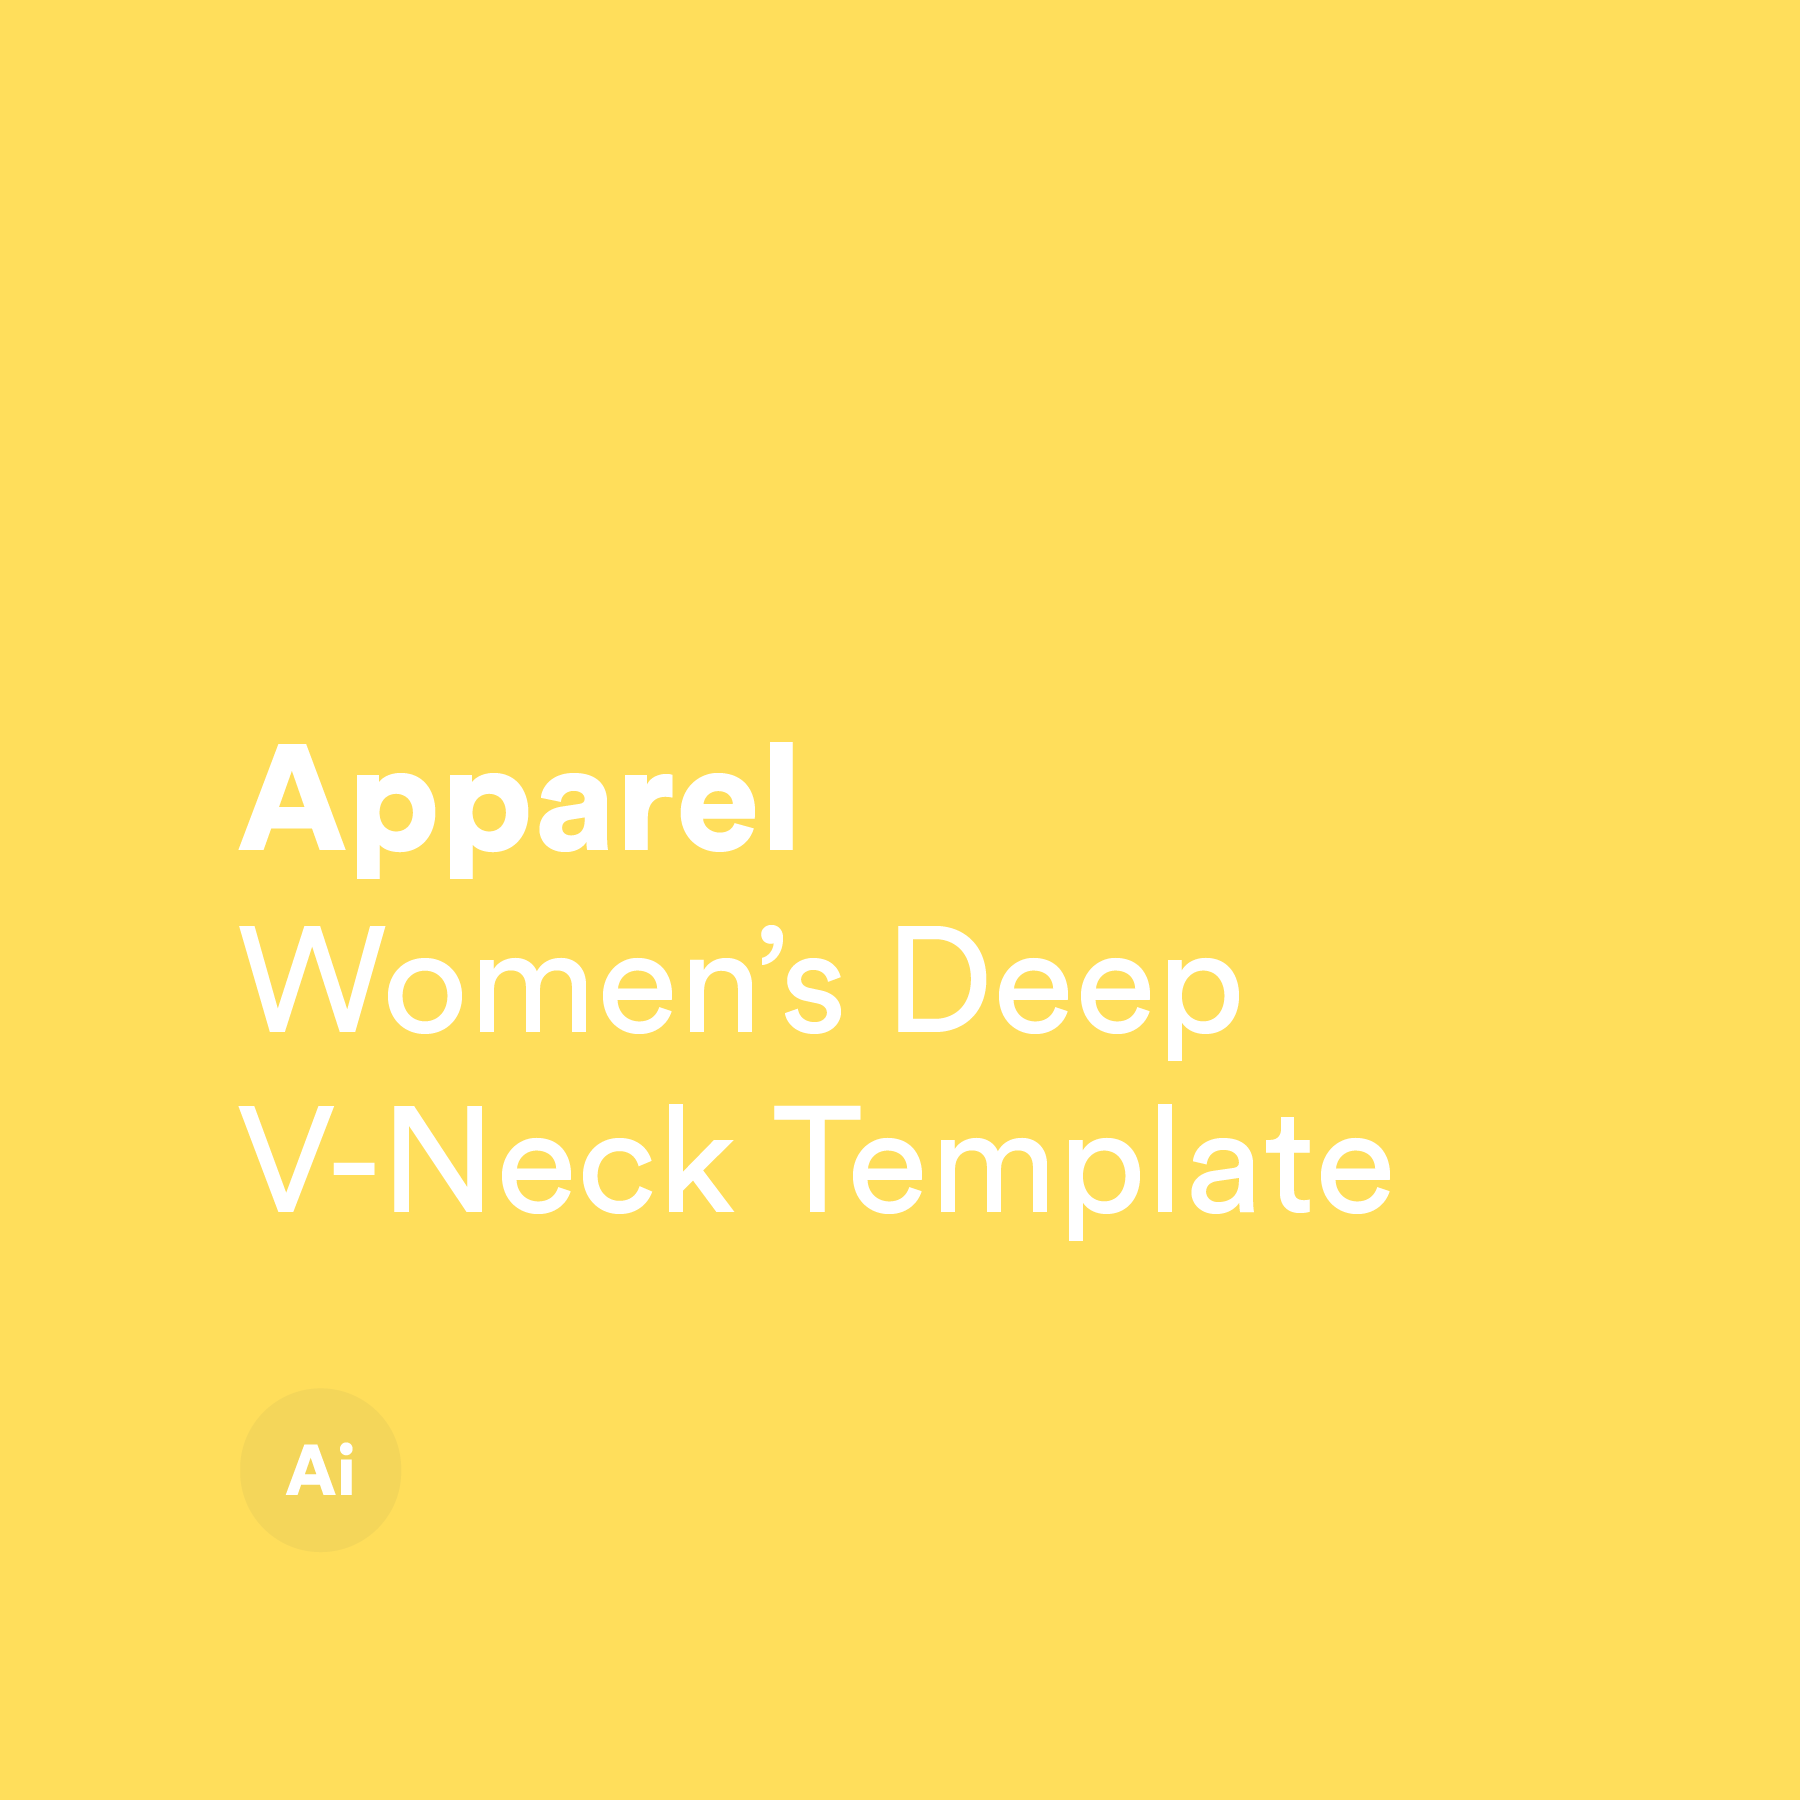 Women's Deep V-Neck Template